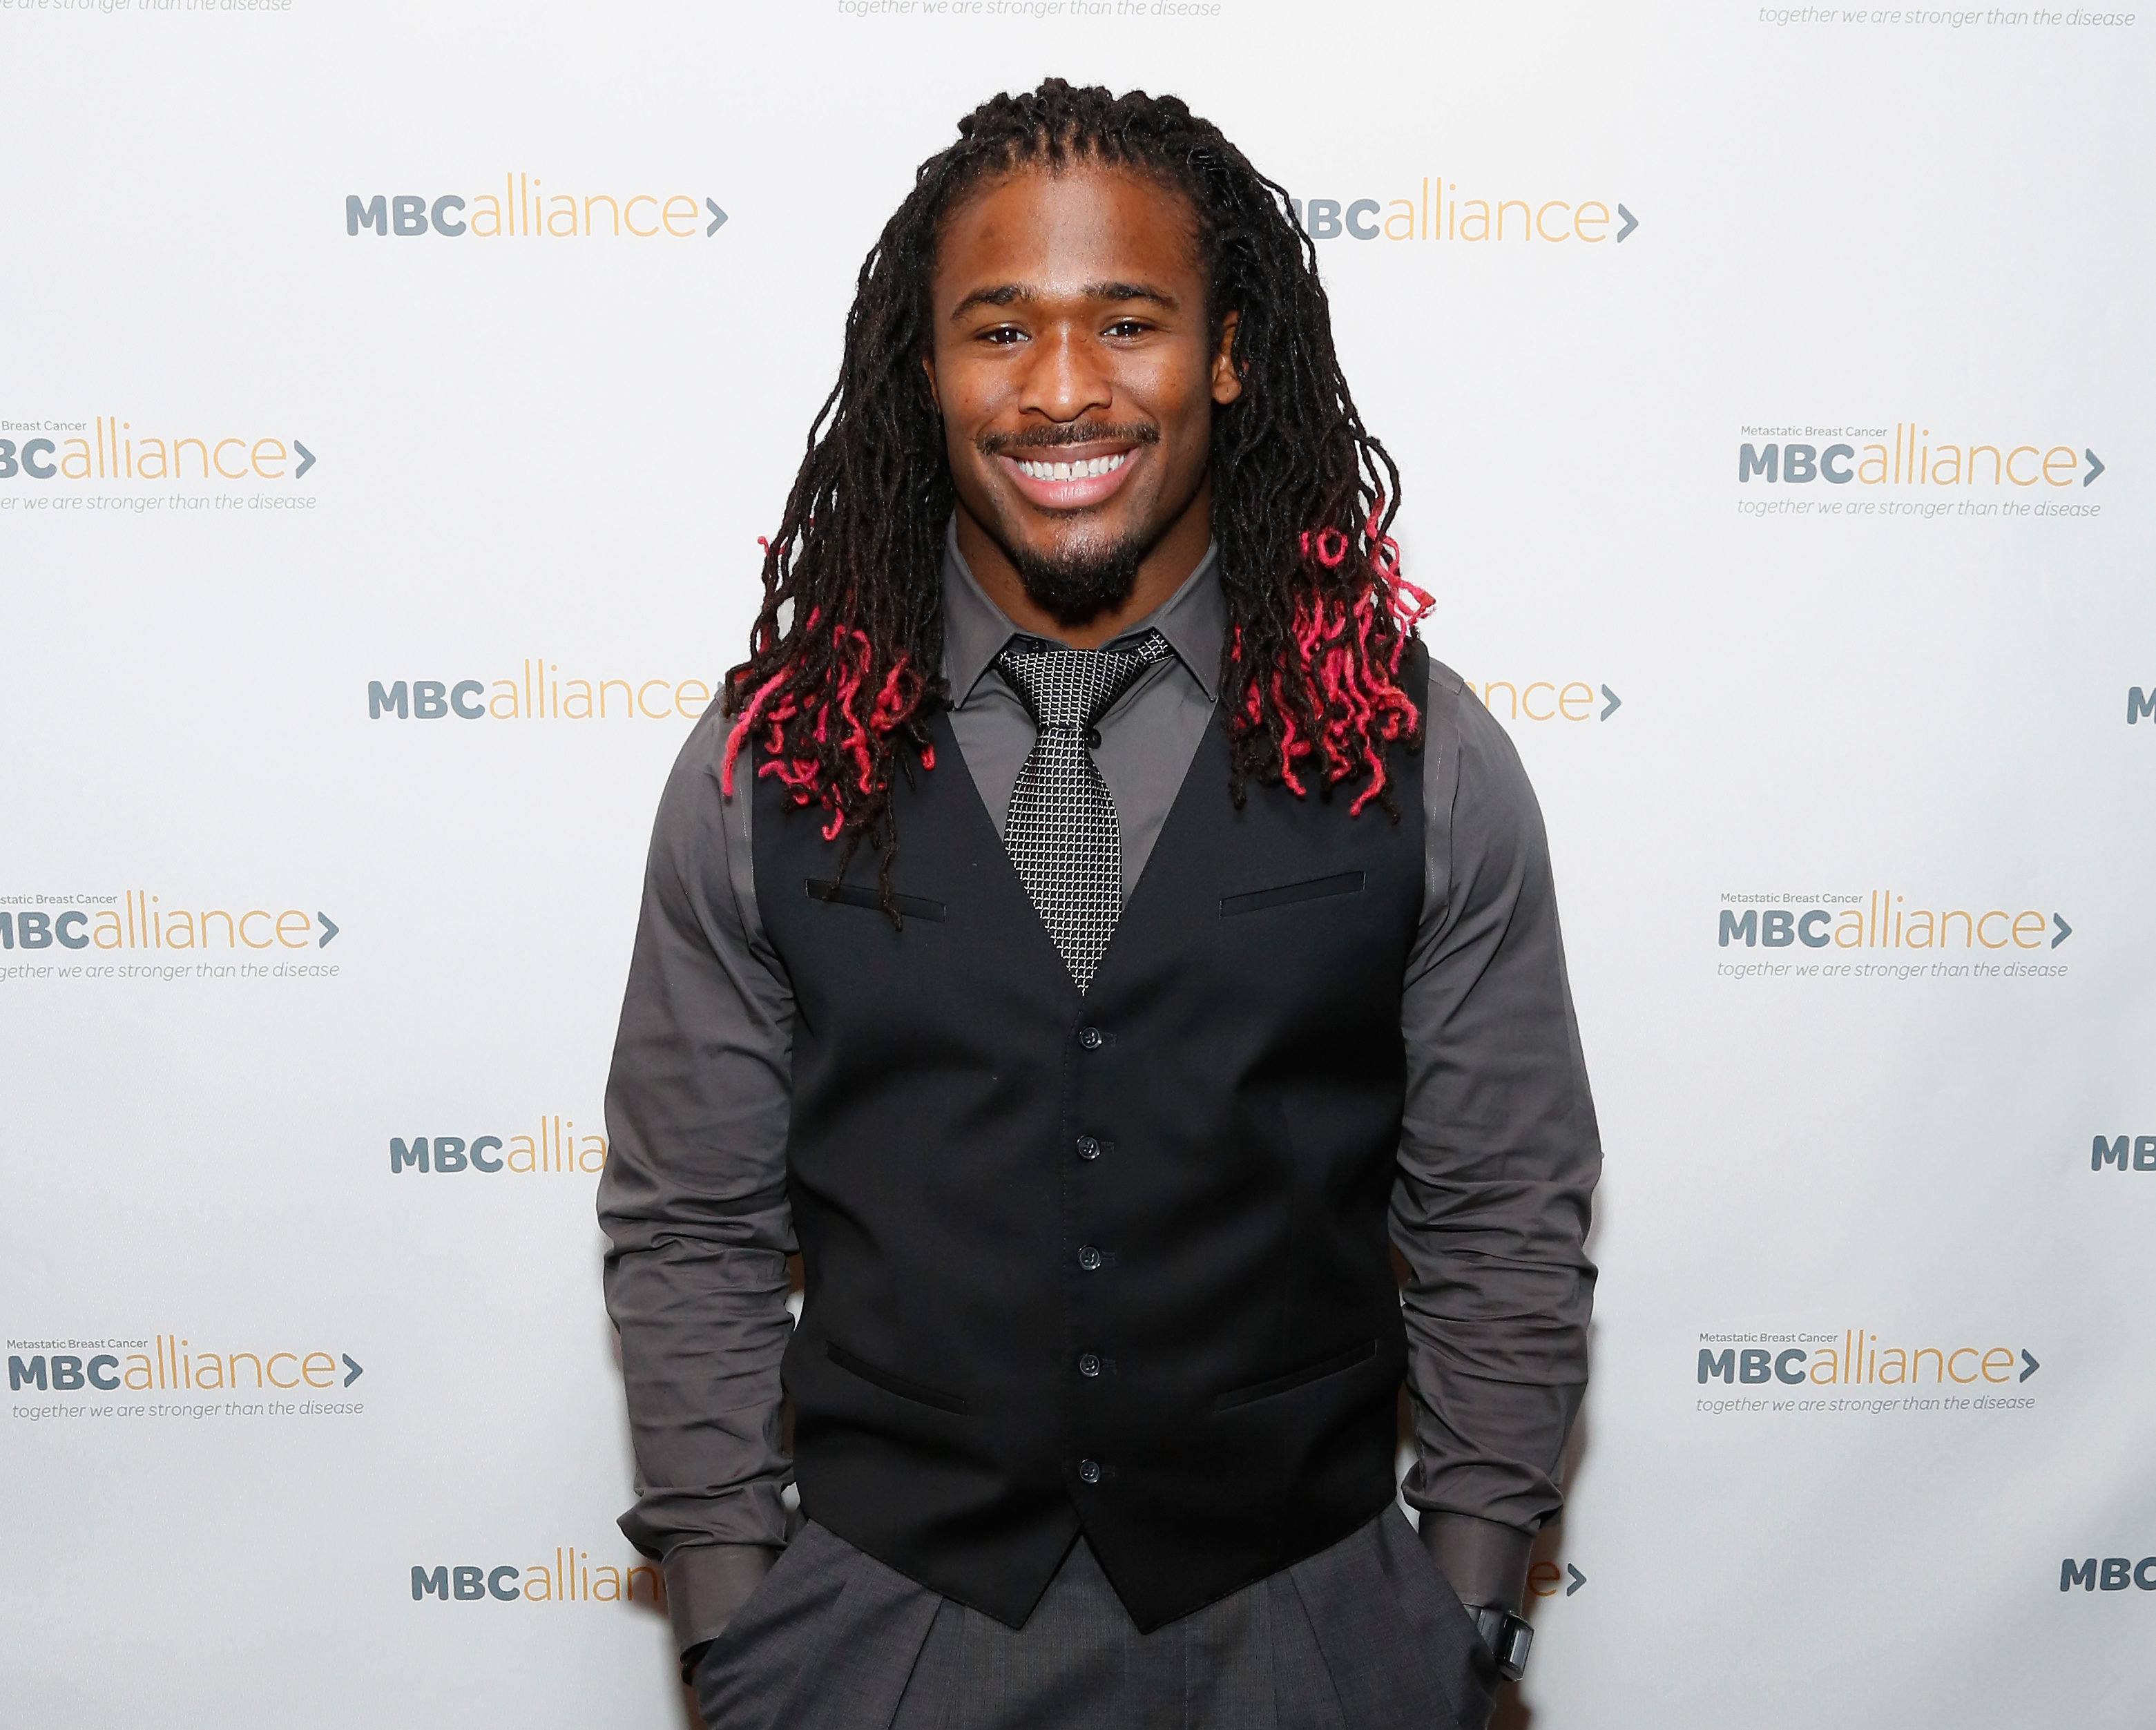 DeAngelo Williams has sponsored more than 500 mammograms for women in honor of his late mother, who passed away from breast cancer.